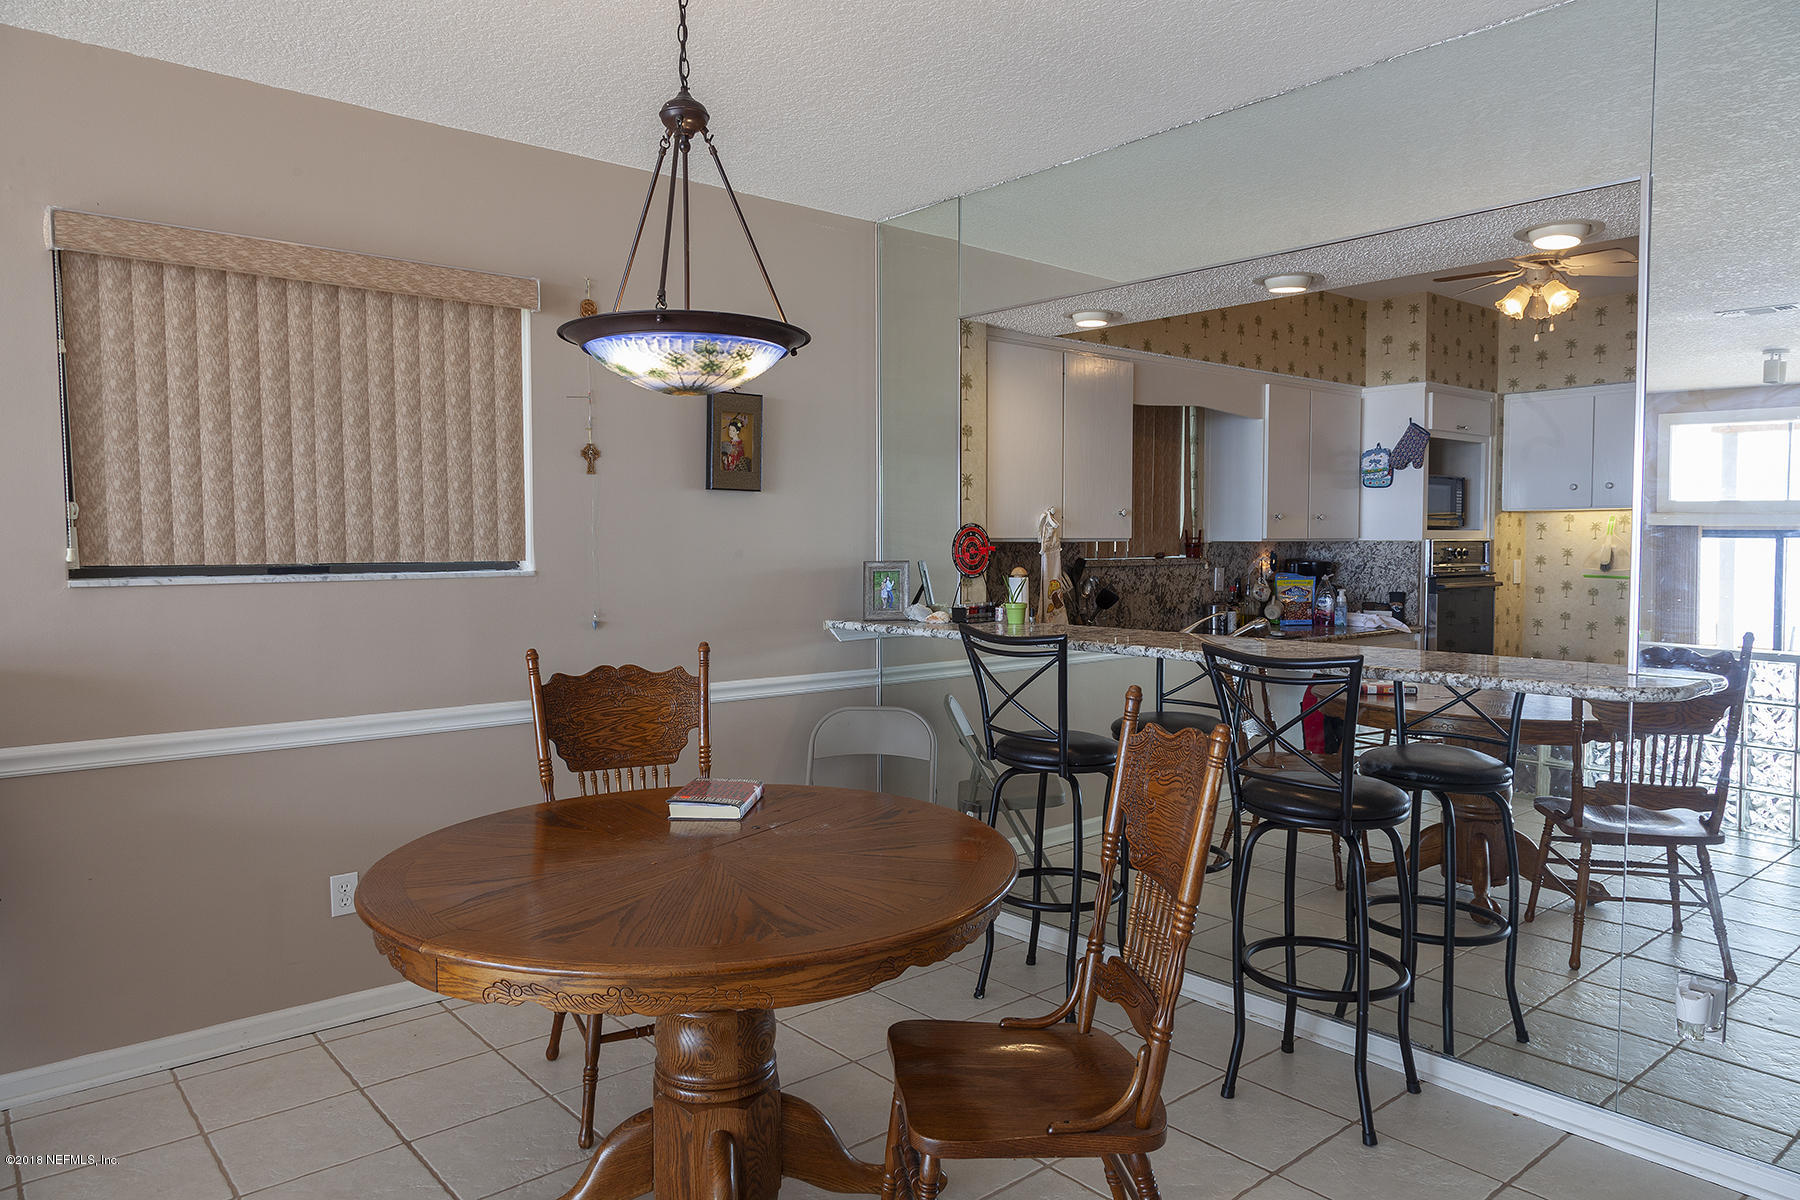 311 SCENIC POINT, FLEMING ISLAND, FLORIDA 32003, 3 Bedrooms Bedrooms, ,2 BathroomsBathrooms,Residential - townhome,For sale,SCENIC POINT,948083